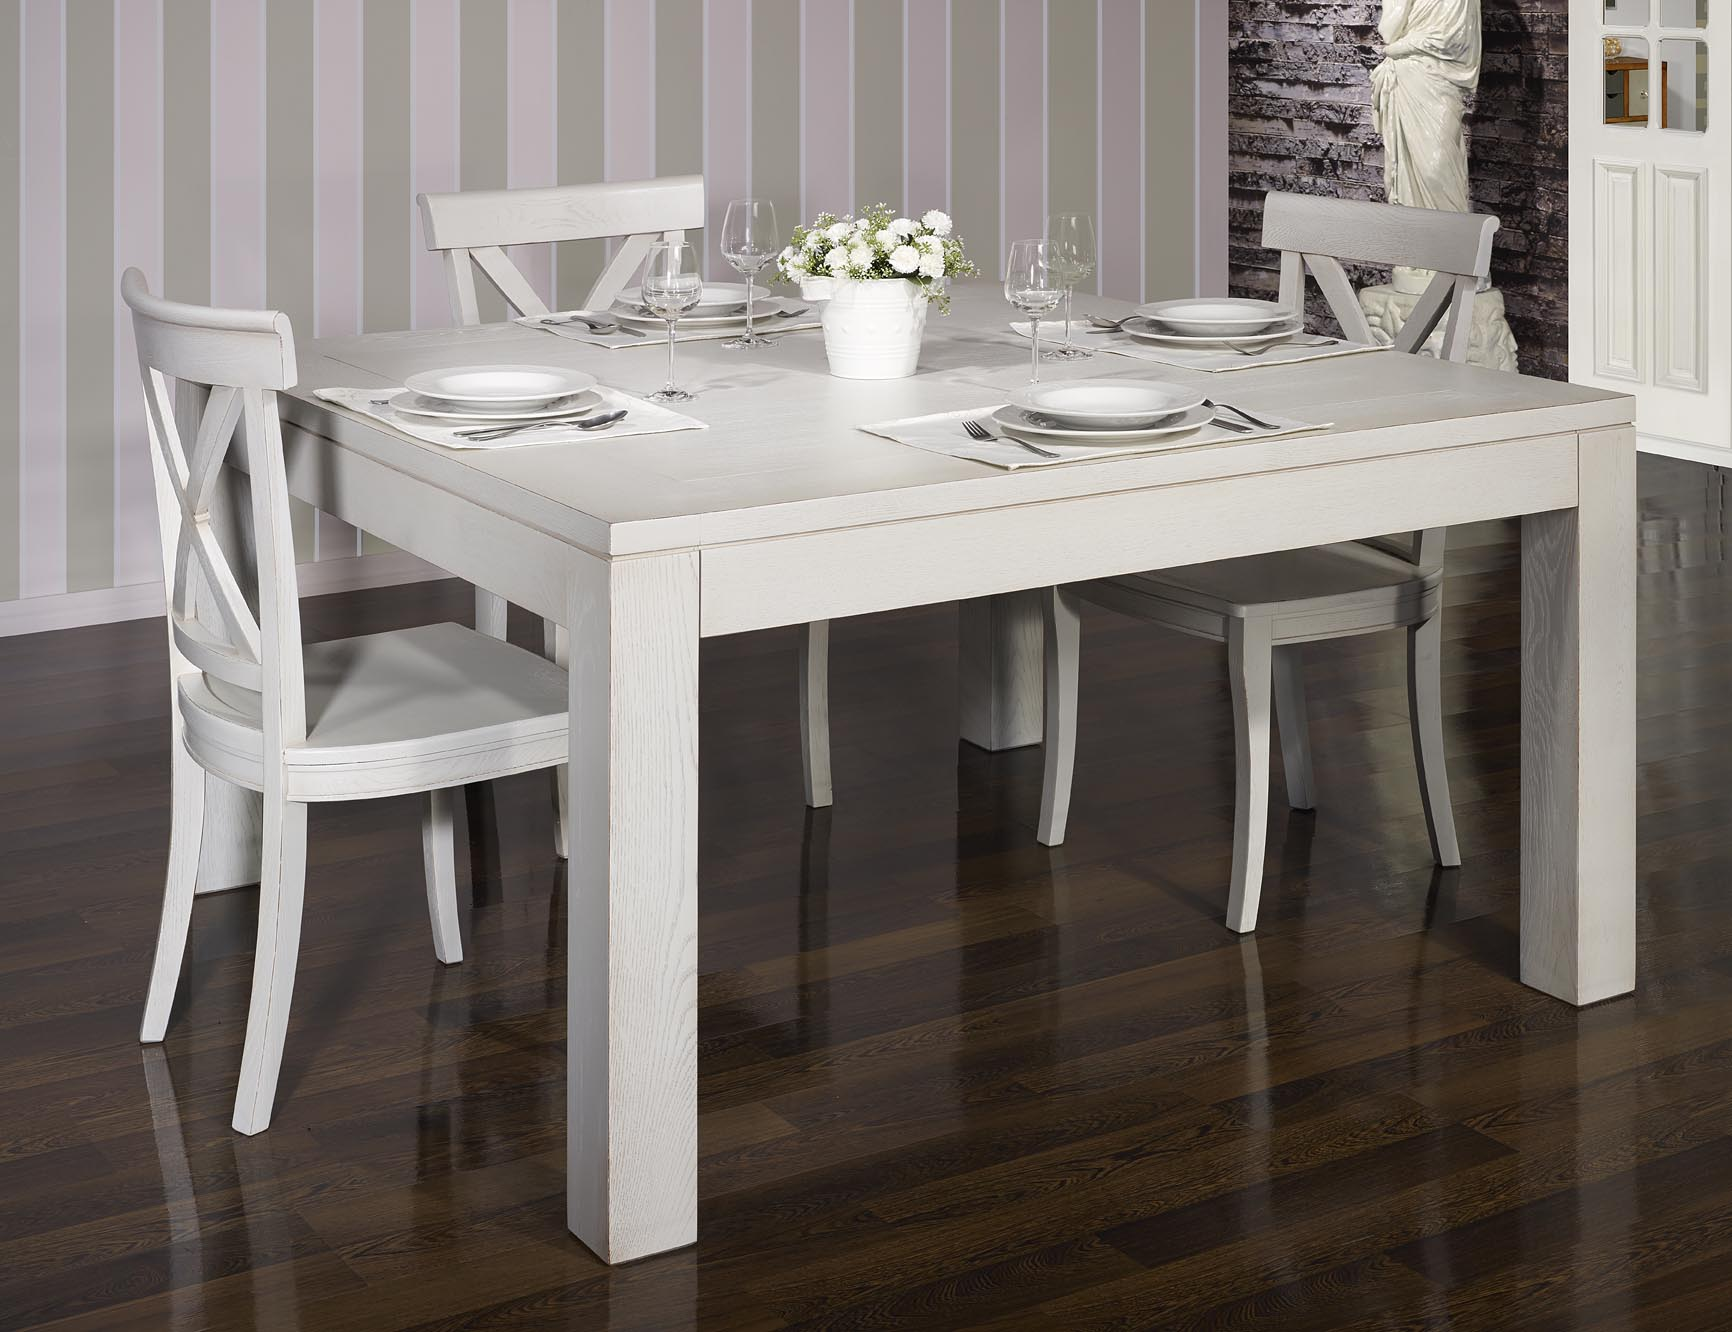 Table de salle manger 140 140 contemporaine en ch ne finition ch ne bross gris perle meuble for Table de sejour carree